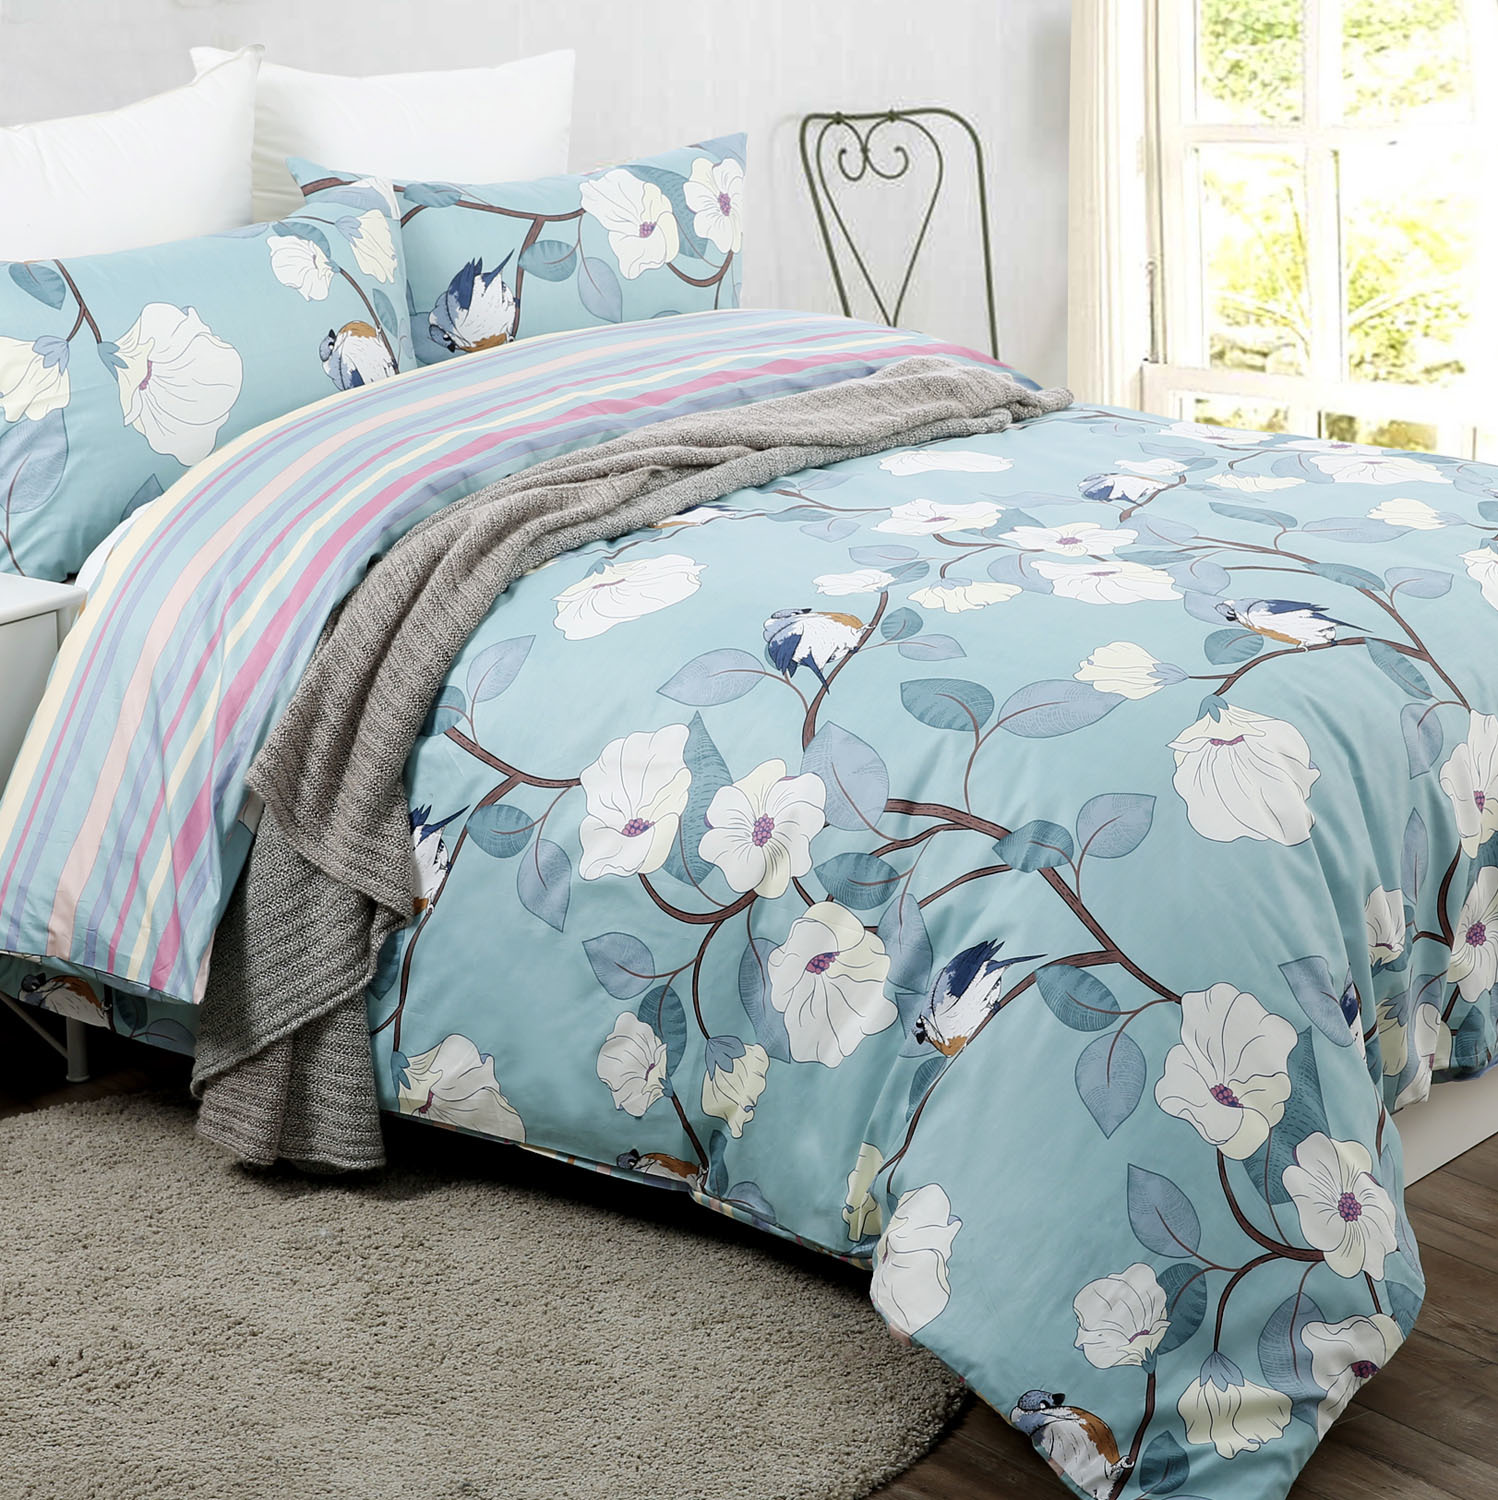 dahlia queenb quilt bambury lif bedroom cover duvet btsqcsds jersey by sets covers cotton bedt